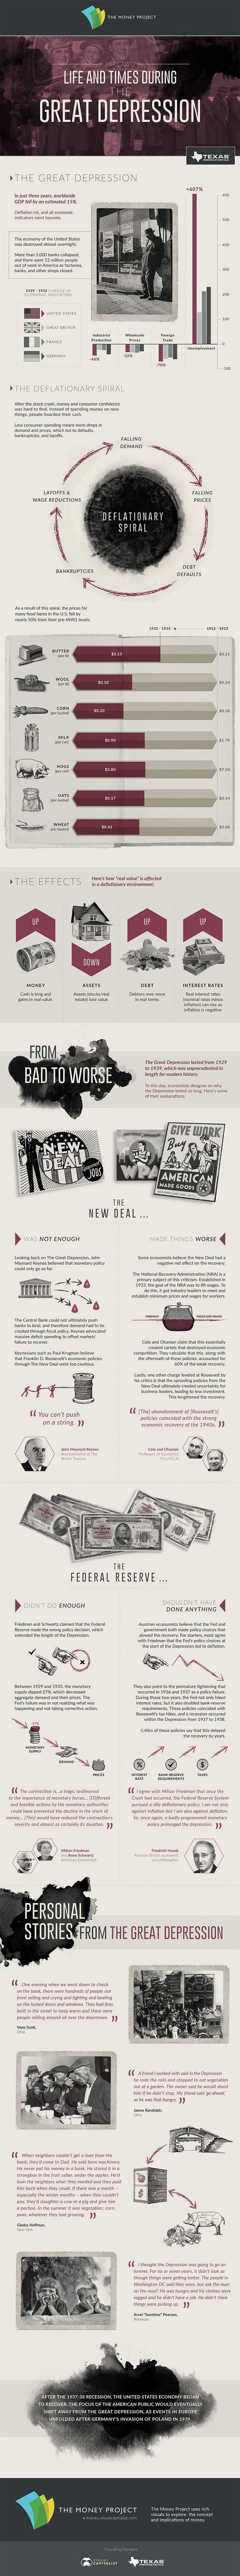 Life And Times During The Great Depression Infographic